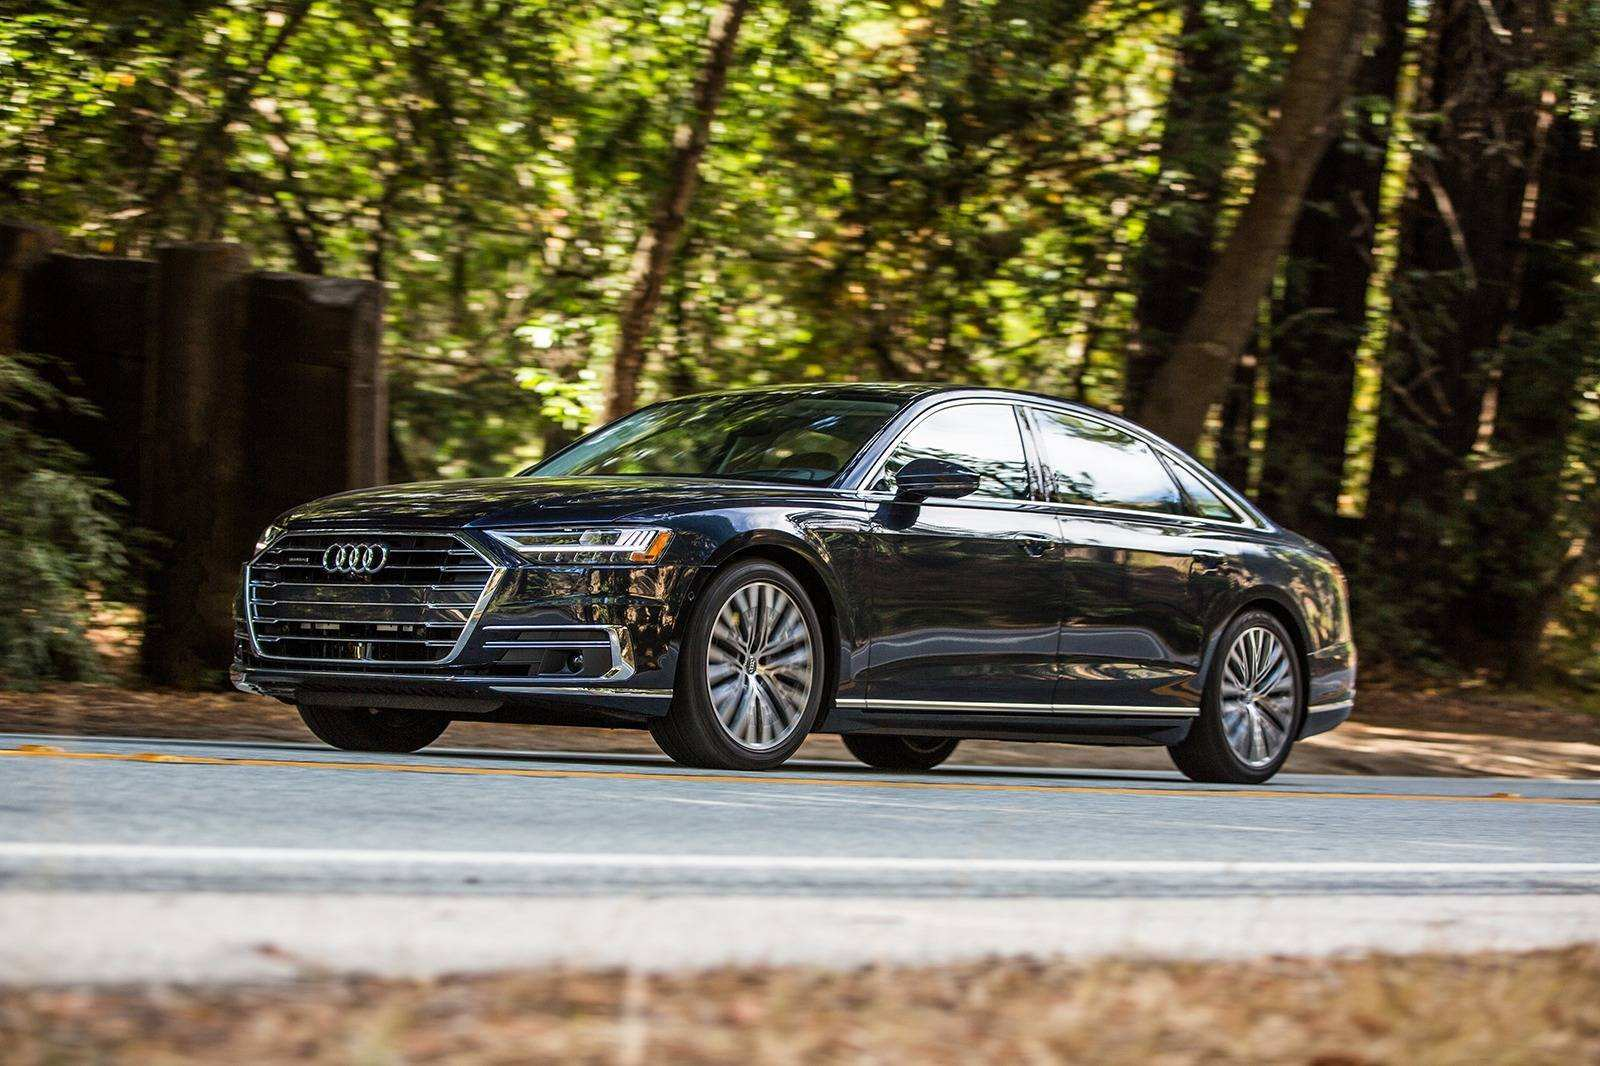 20 Best Review 2019 Audi A8 Debut Performance and New Engine for 2019 Audi A8 Debut